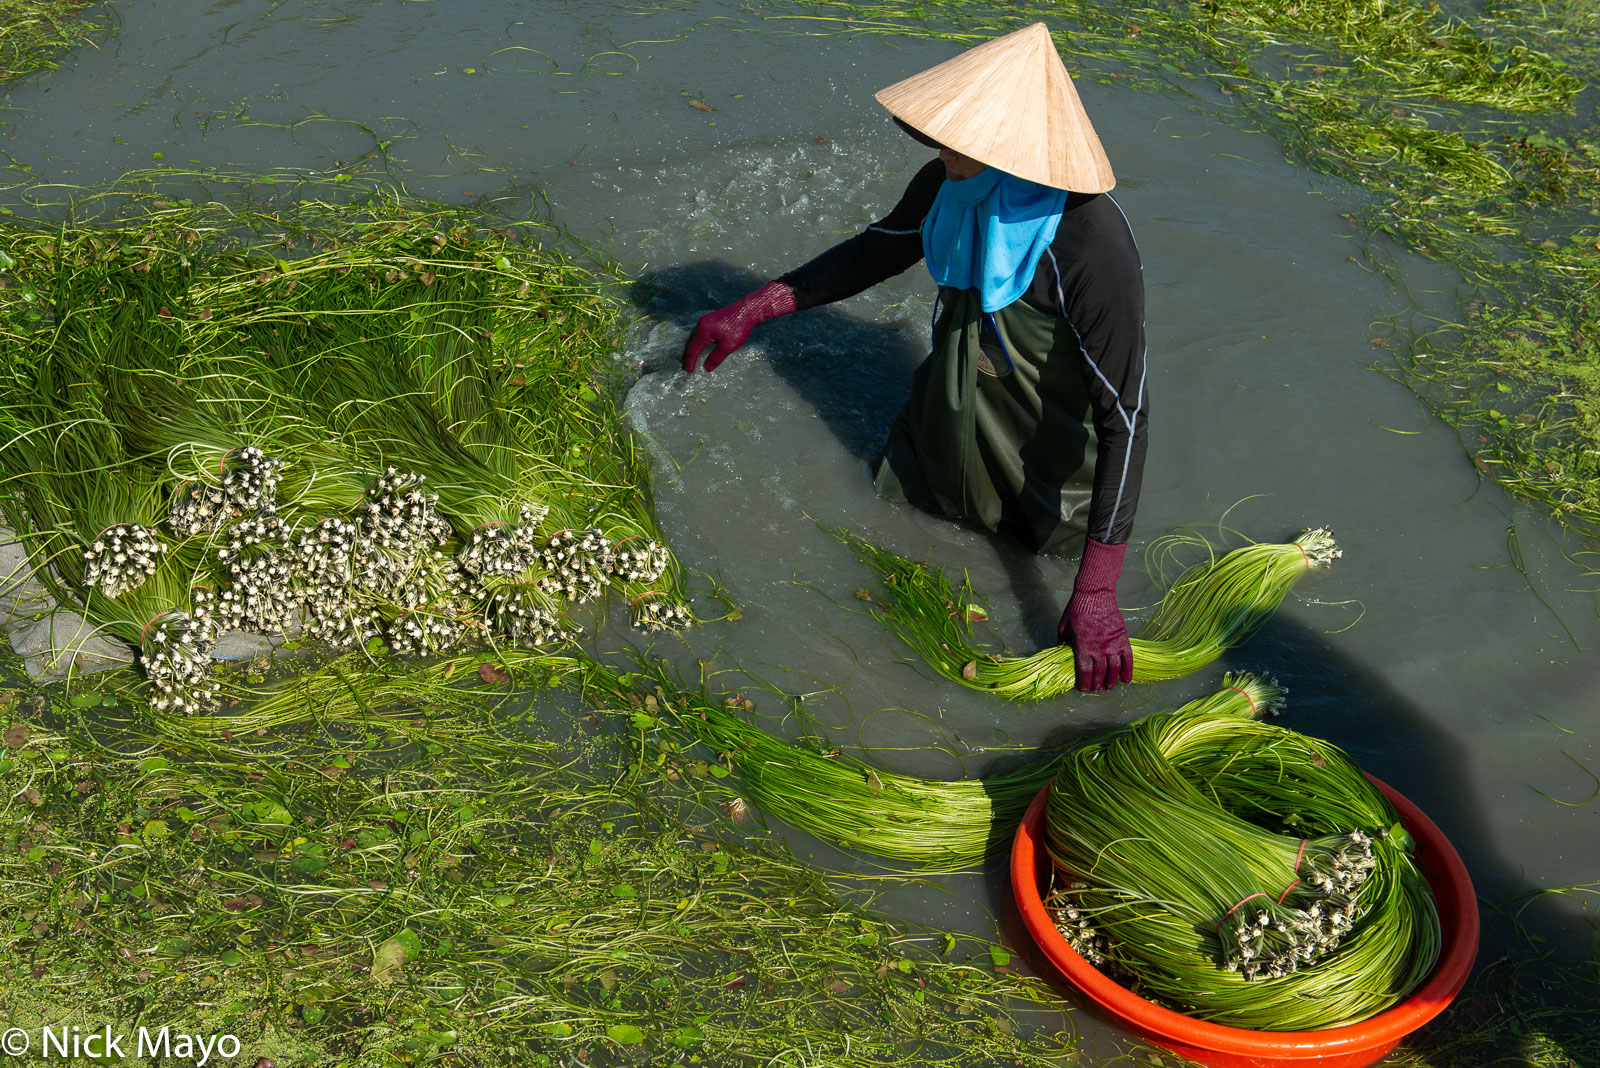 Water lily stems being washed and prepared for market in a pond in Meinong district.